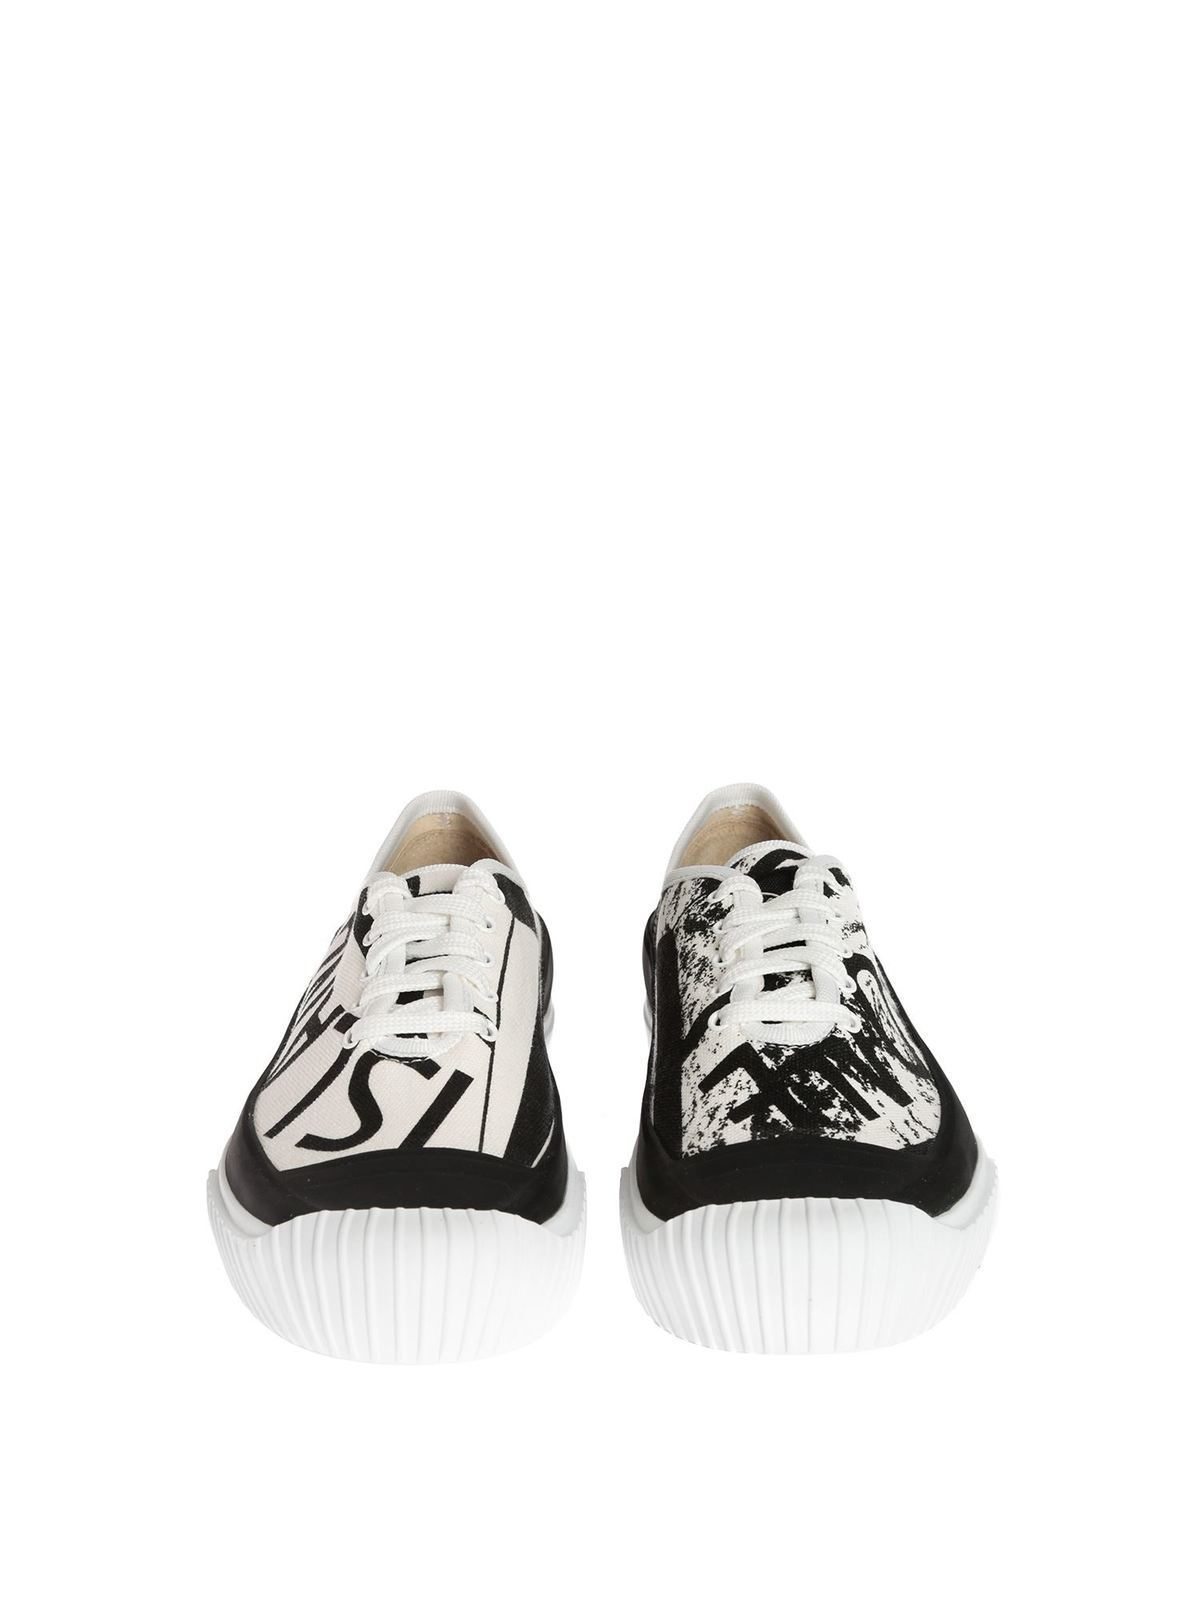 Stone Island - Branded canvas sneakers